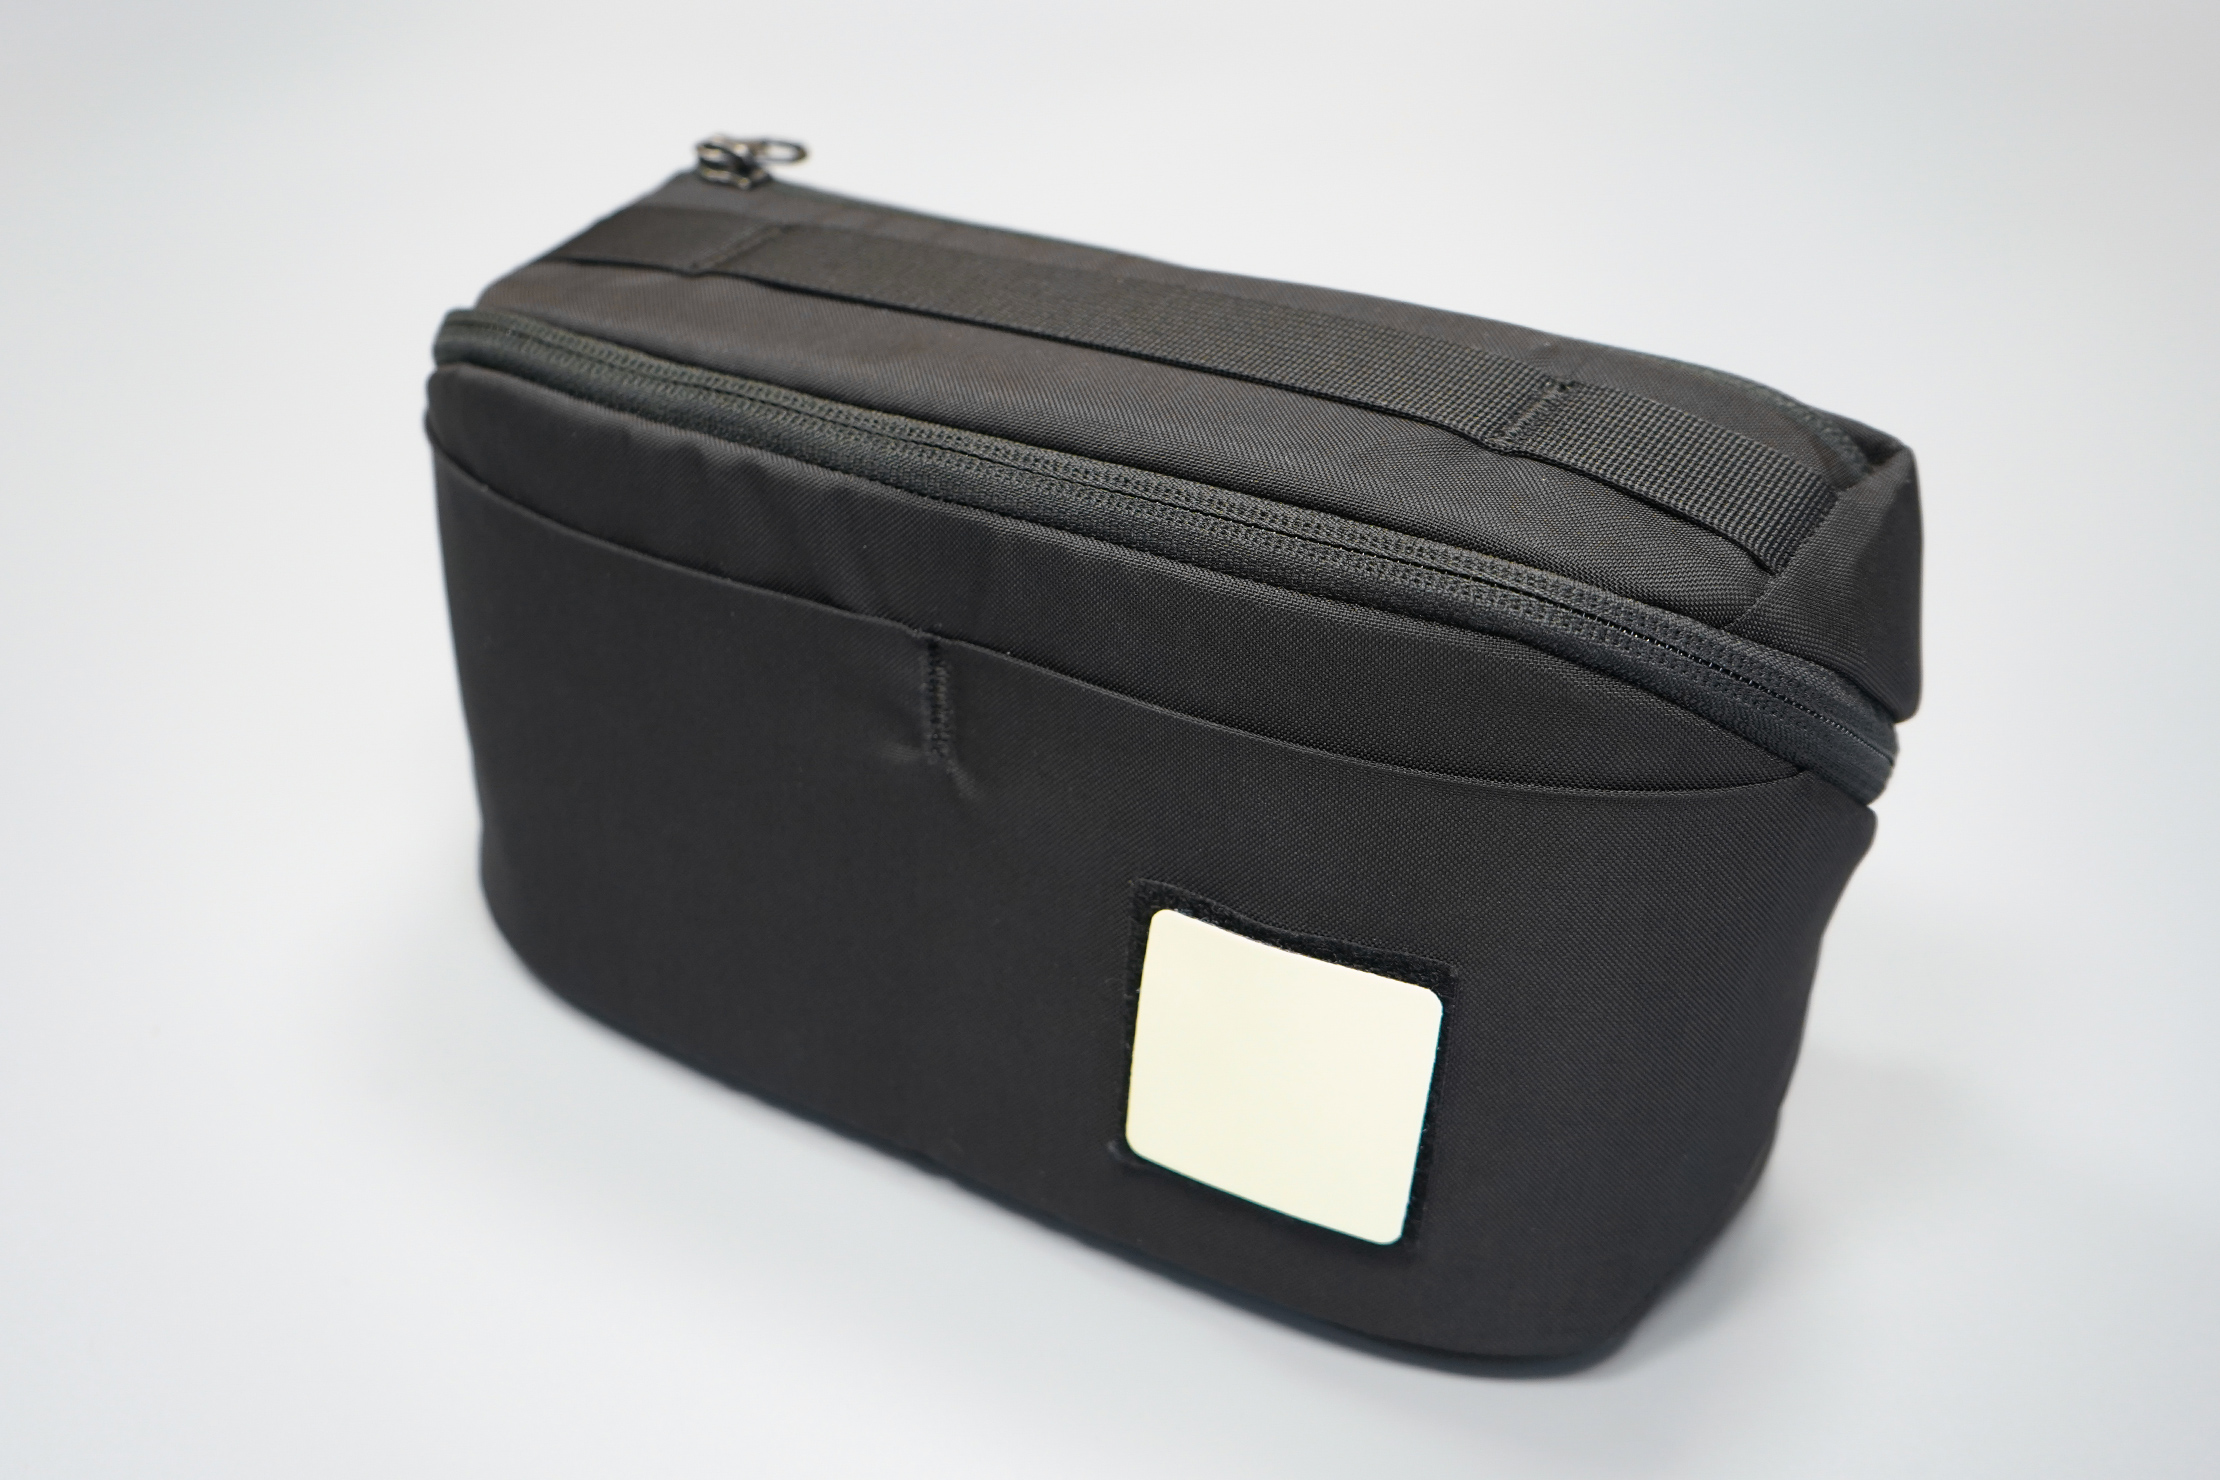 EVERGOODS Civic Access Pouch 2L | It hides in plain sight, but the handle is there